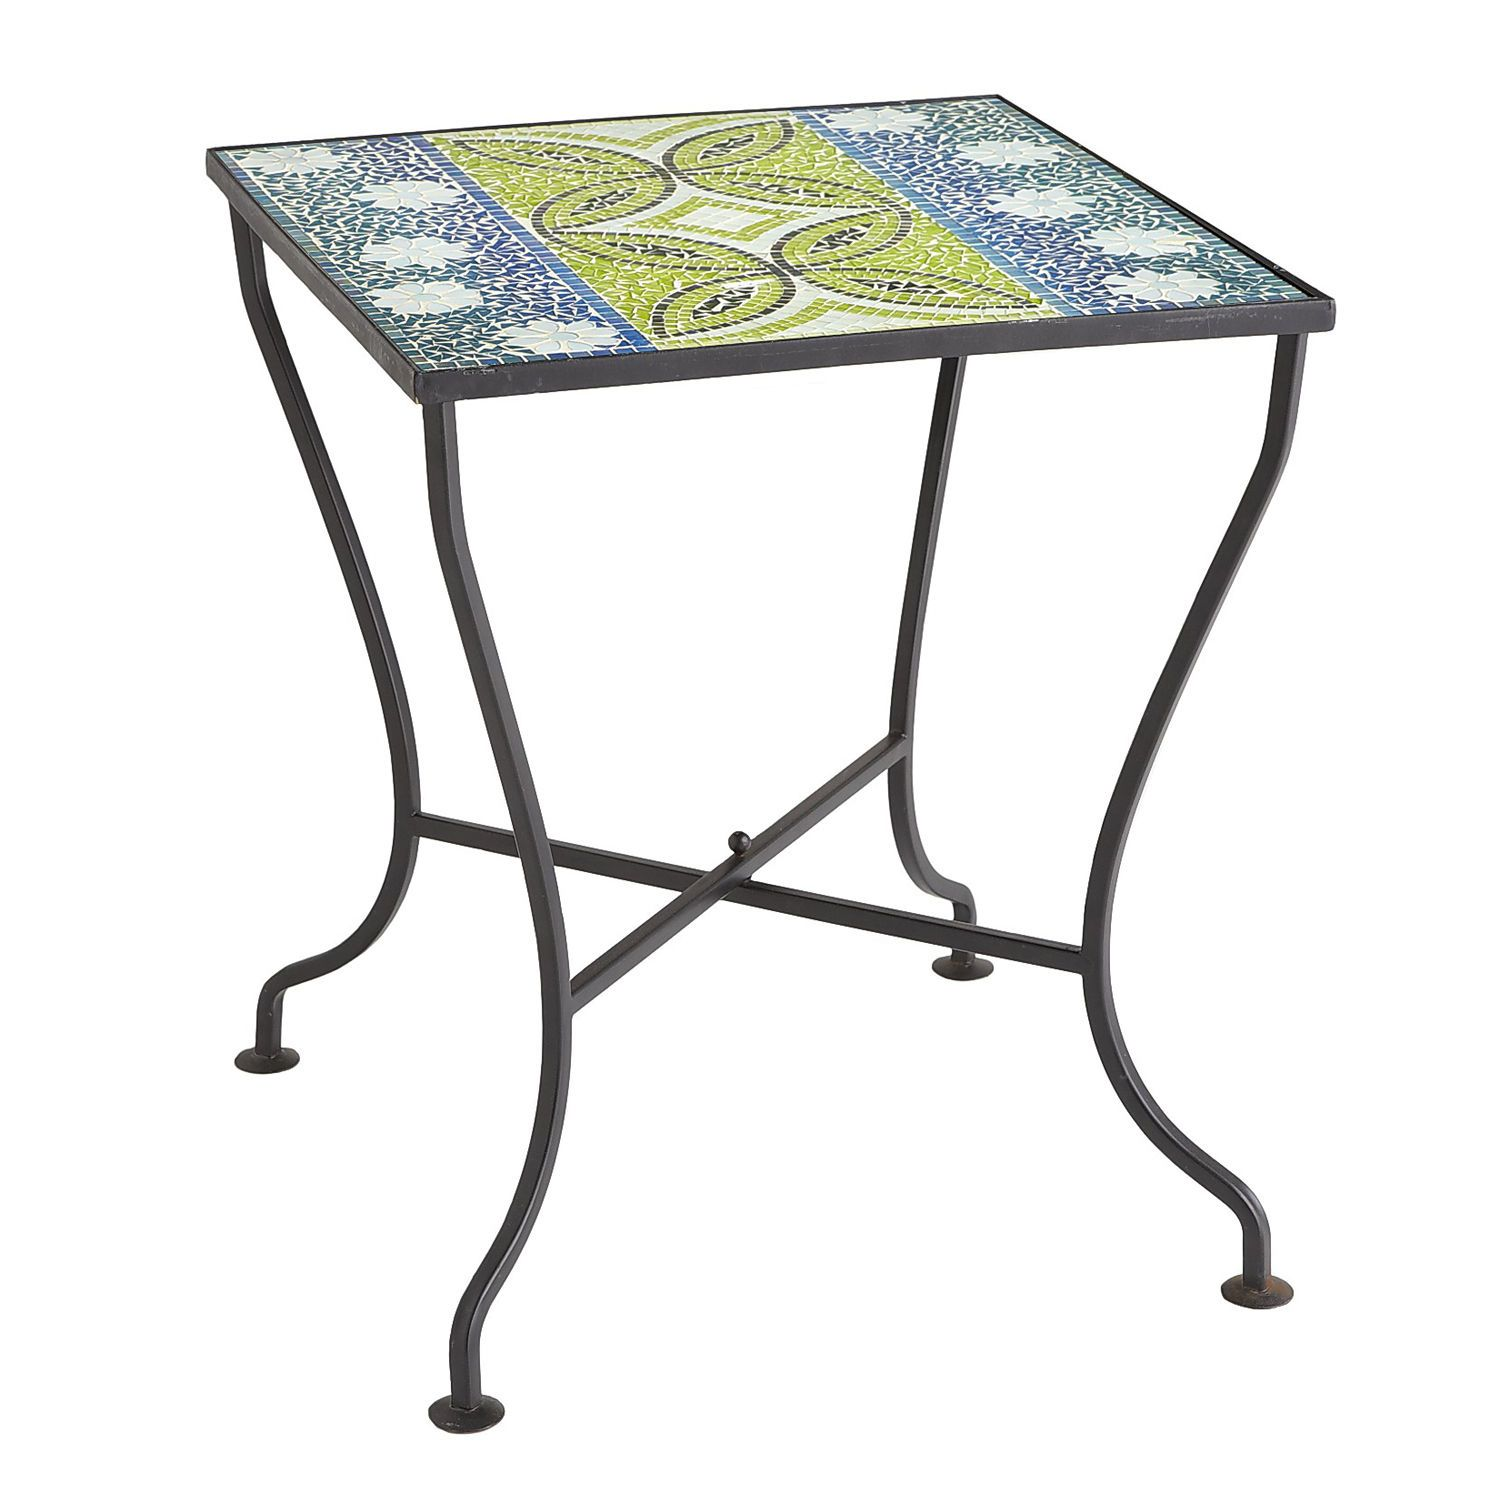 Lani Mosaic Accent Table Pier 1 Imports Mosaic Accent Table